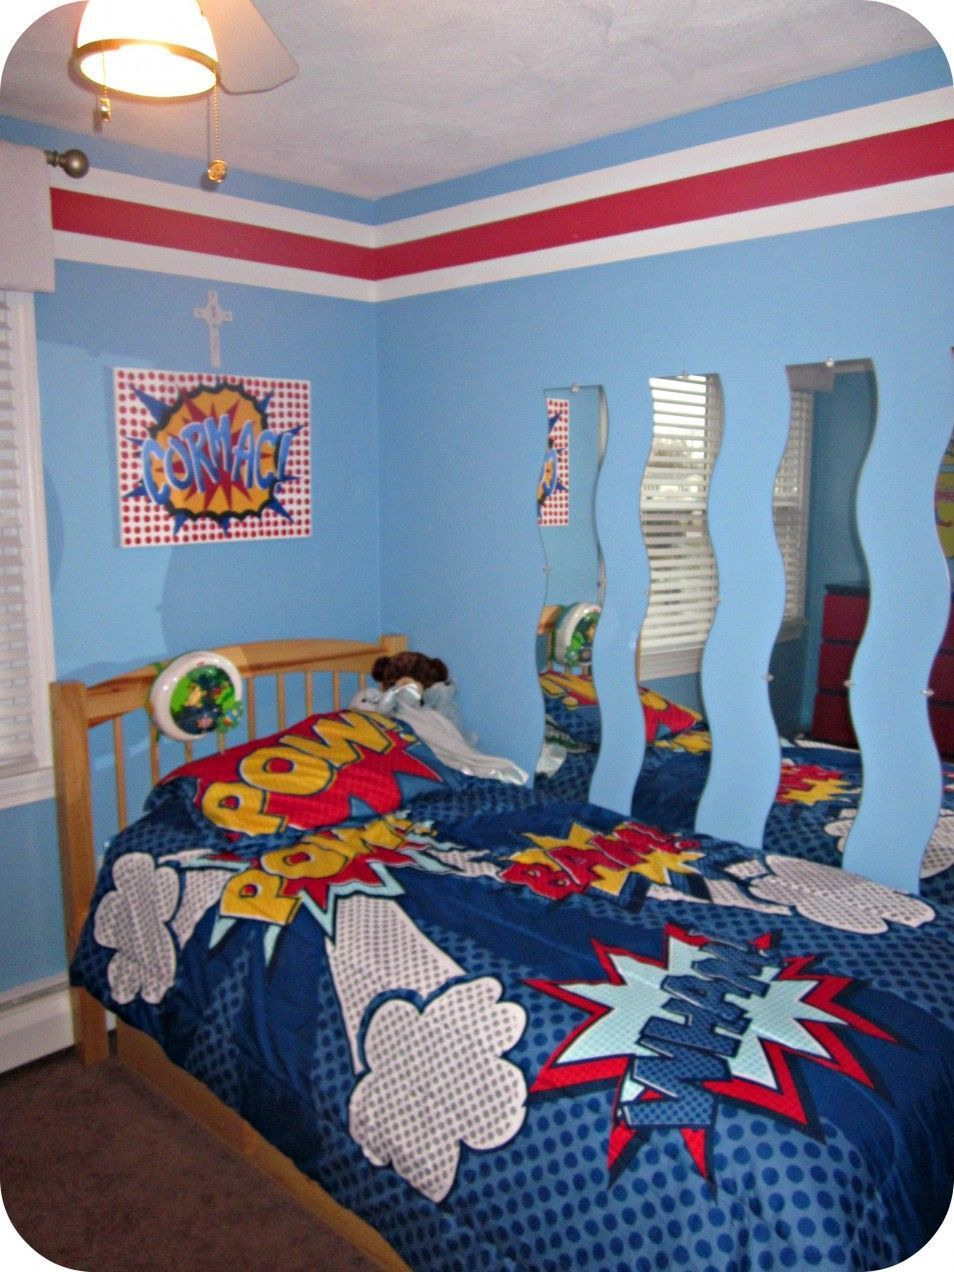 Luxury bedroom furniture design with boys shared bedroom ideas at